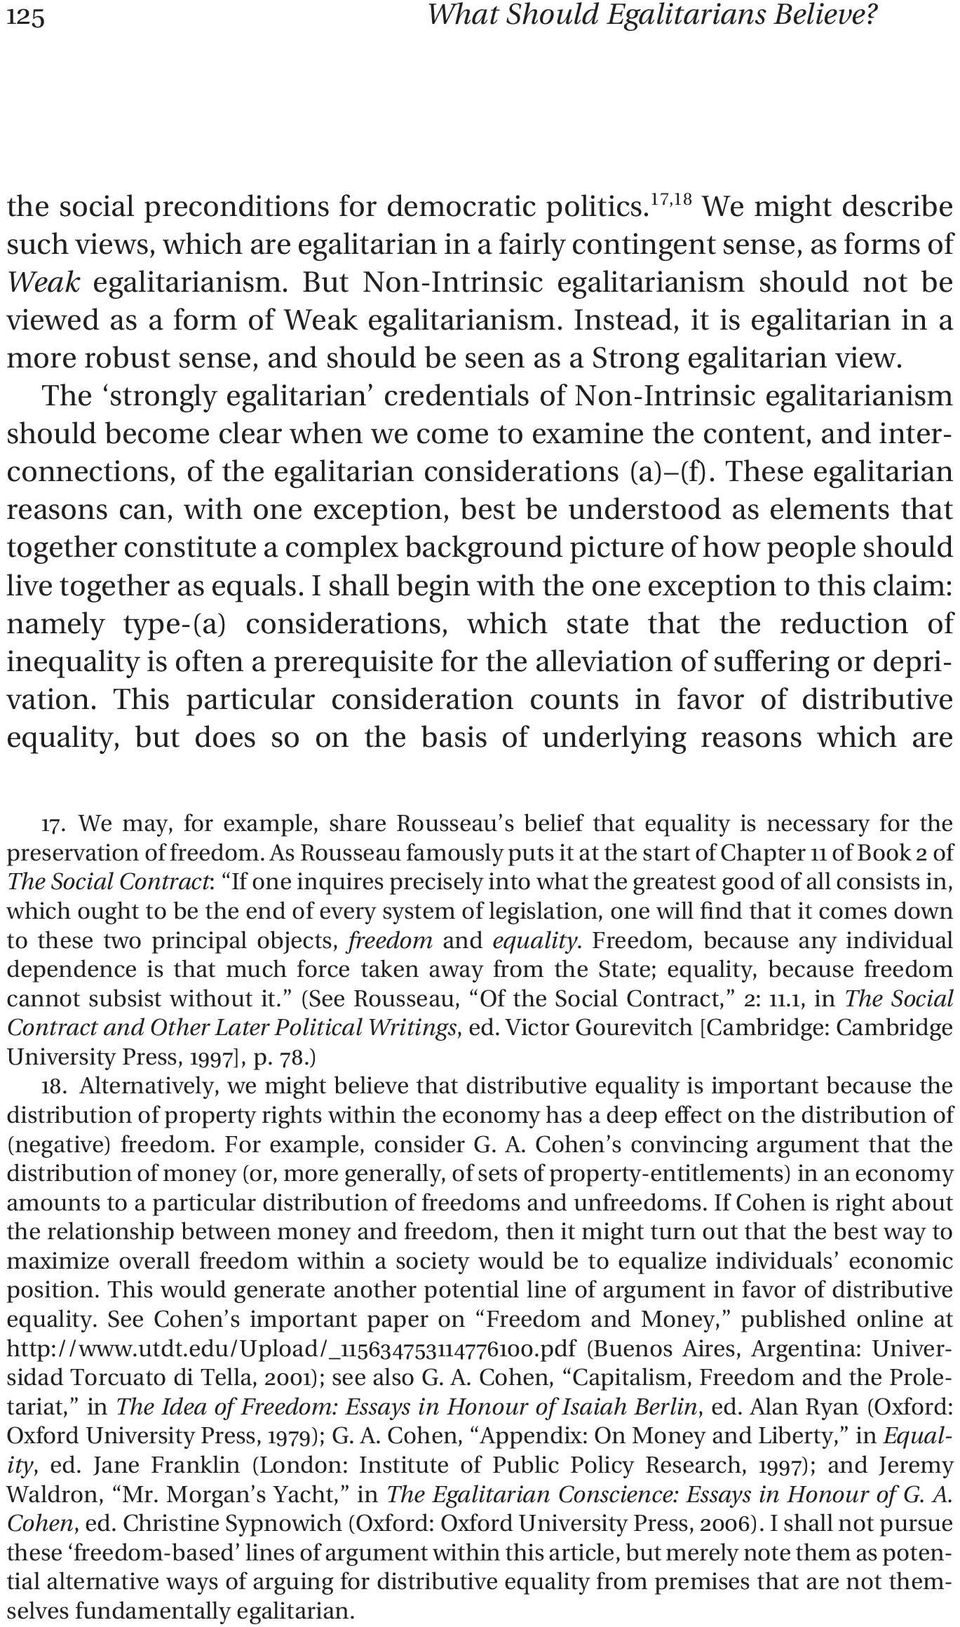 But Non-Intrinsic egalitarianism should not be viewed as a form of Weak egalitarianism. Instead, it is egalitarian in a more robust sense, and should be seen as a Strong egalitarian view.